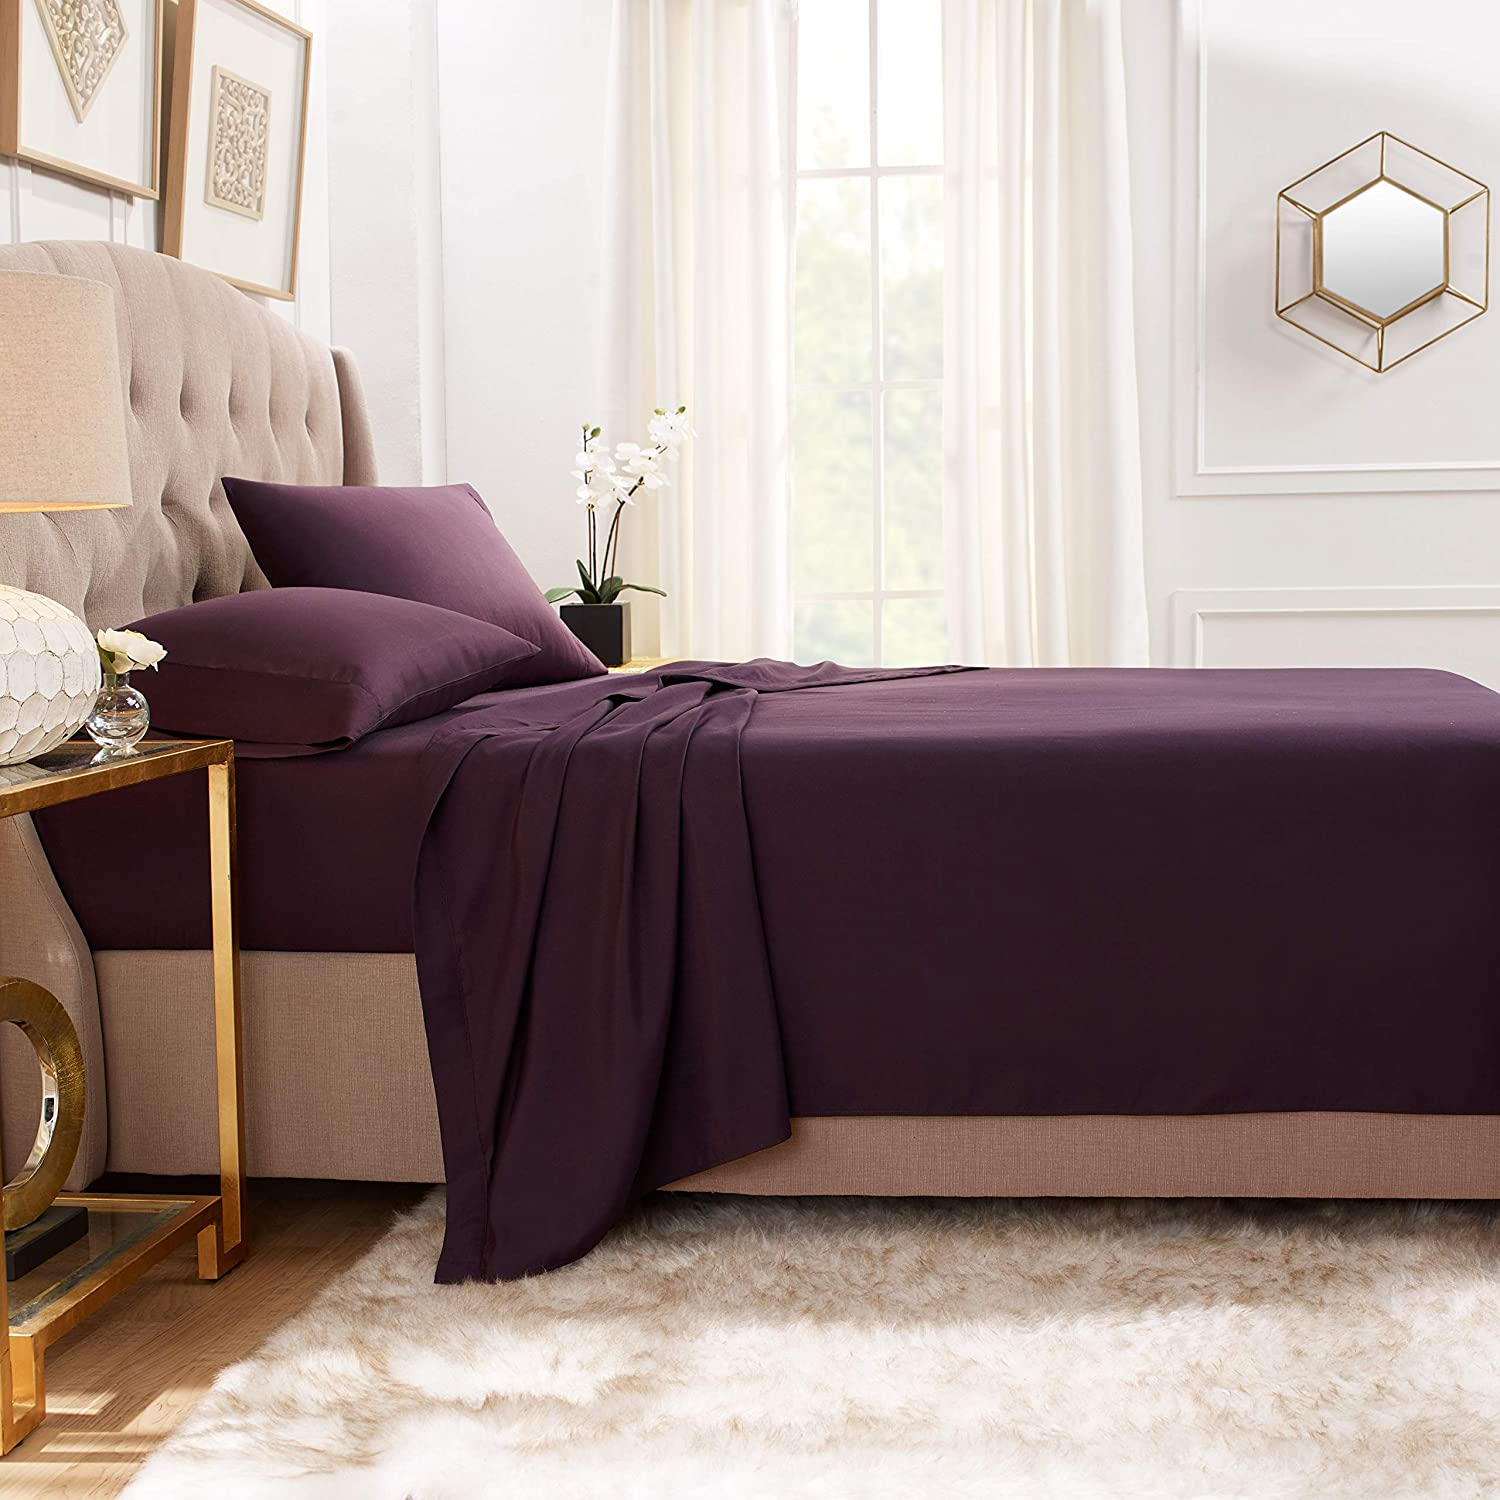 """Luxurious /& Soft Hotel Hypoallergenic Empyrean Bedding Premium Flat Sheets Twin 2-Pack /""""110 GSM/"""" Top Bed Sheets Double Brushed Microfiber Thick and Comfortable Flat Sheets Set Purple Eggplant"""